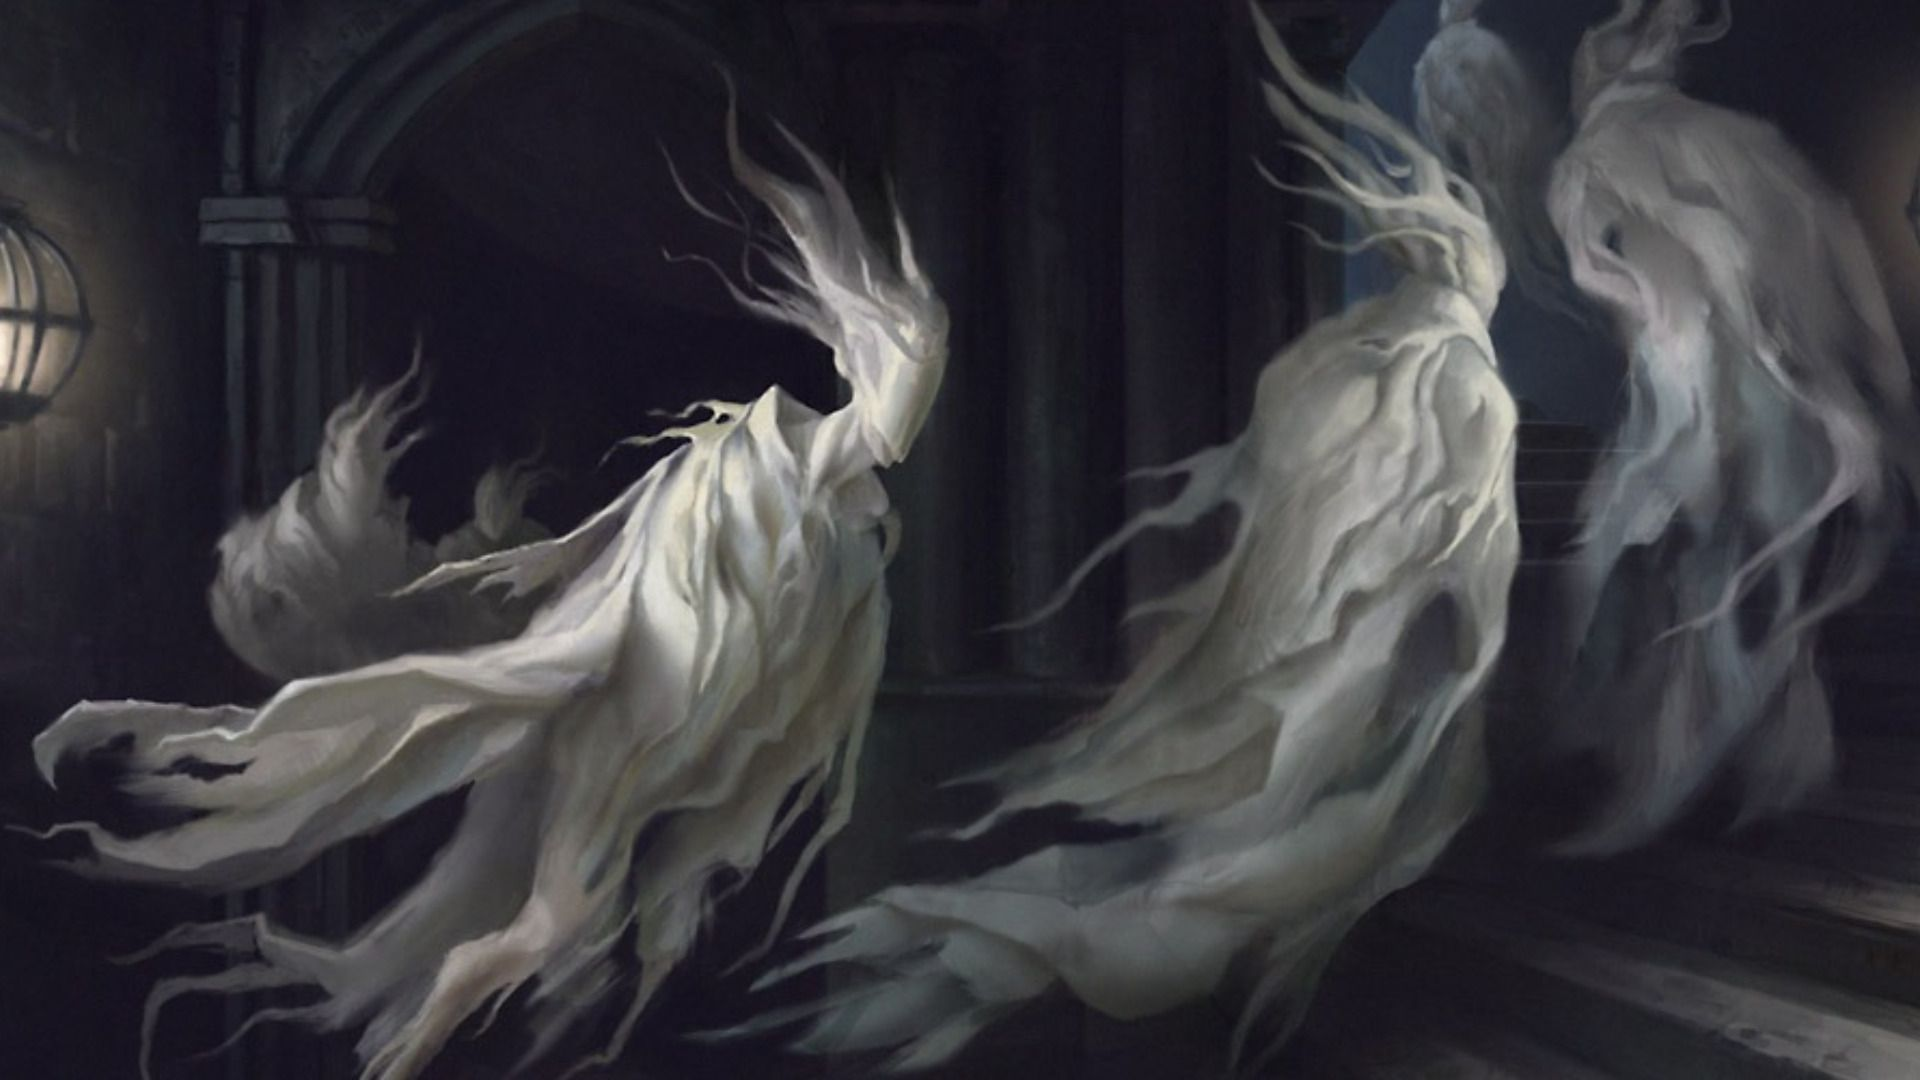 Scary Halloween Ghost Wallpapers - Top Free Scary Halloween Ghost  Backgrounds - WallpaperAccess